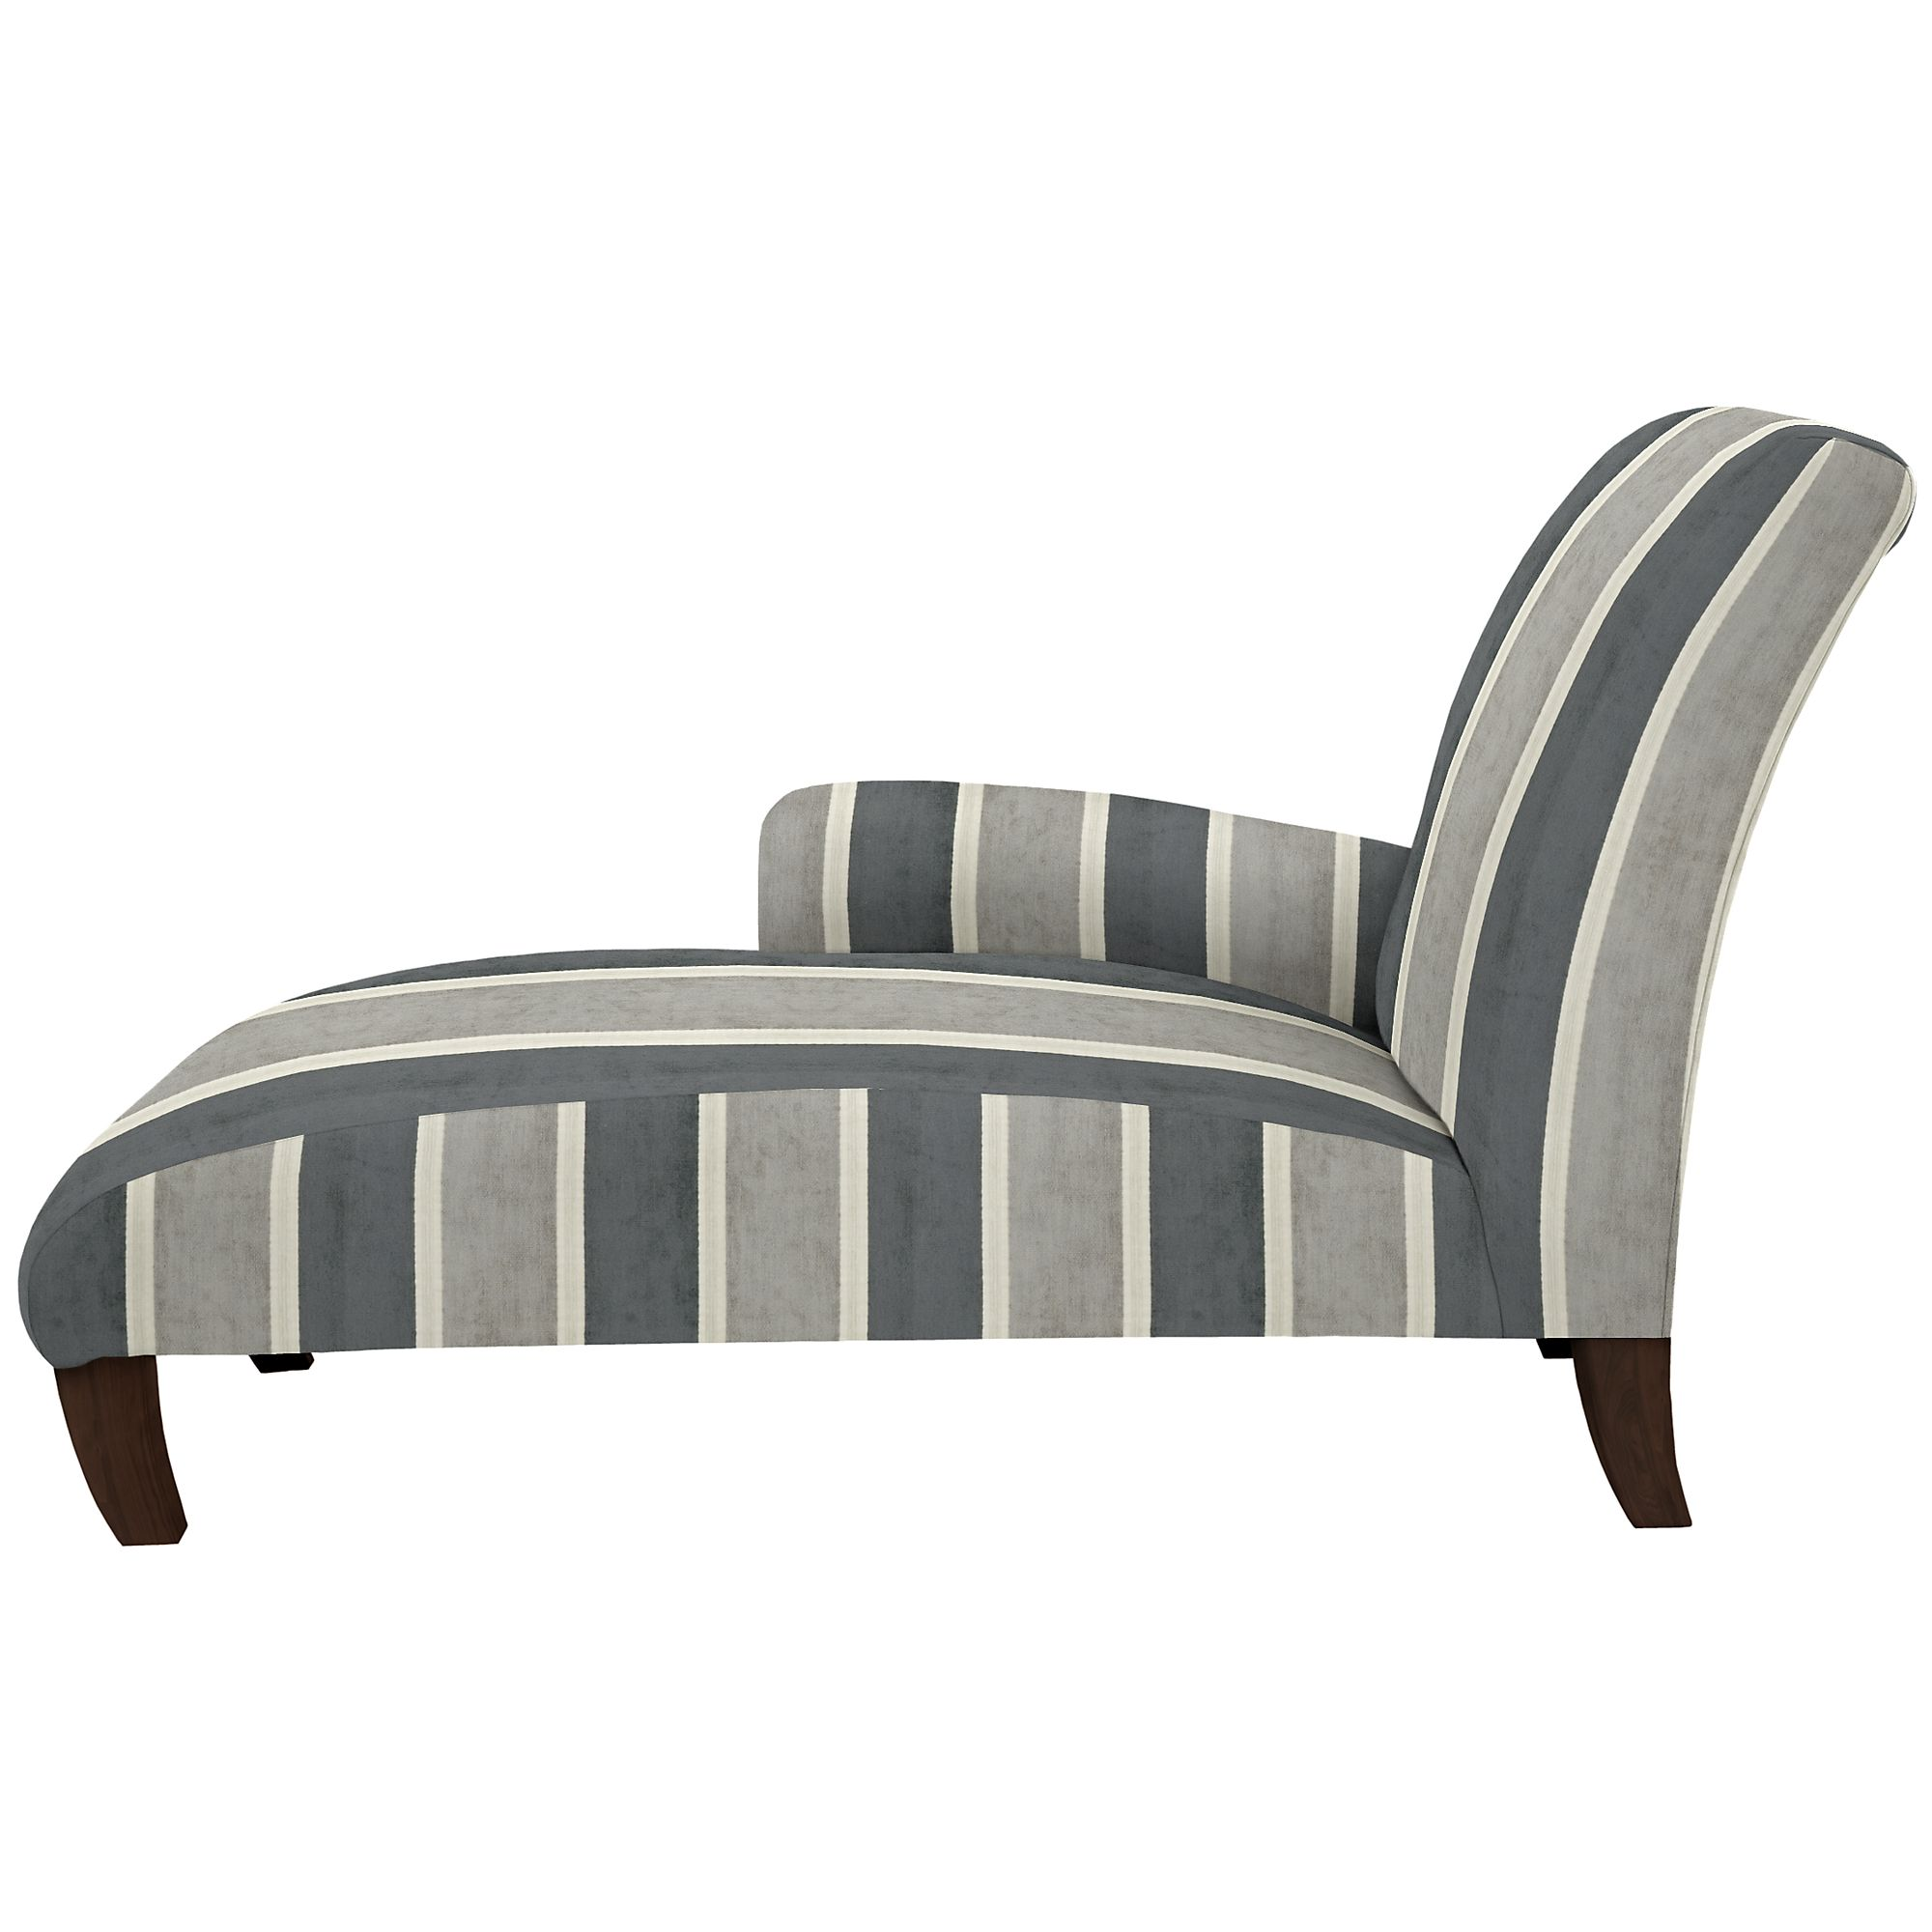 John lewis lucca rhf chaise longue price band b athena for Chaise longue john lewis